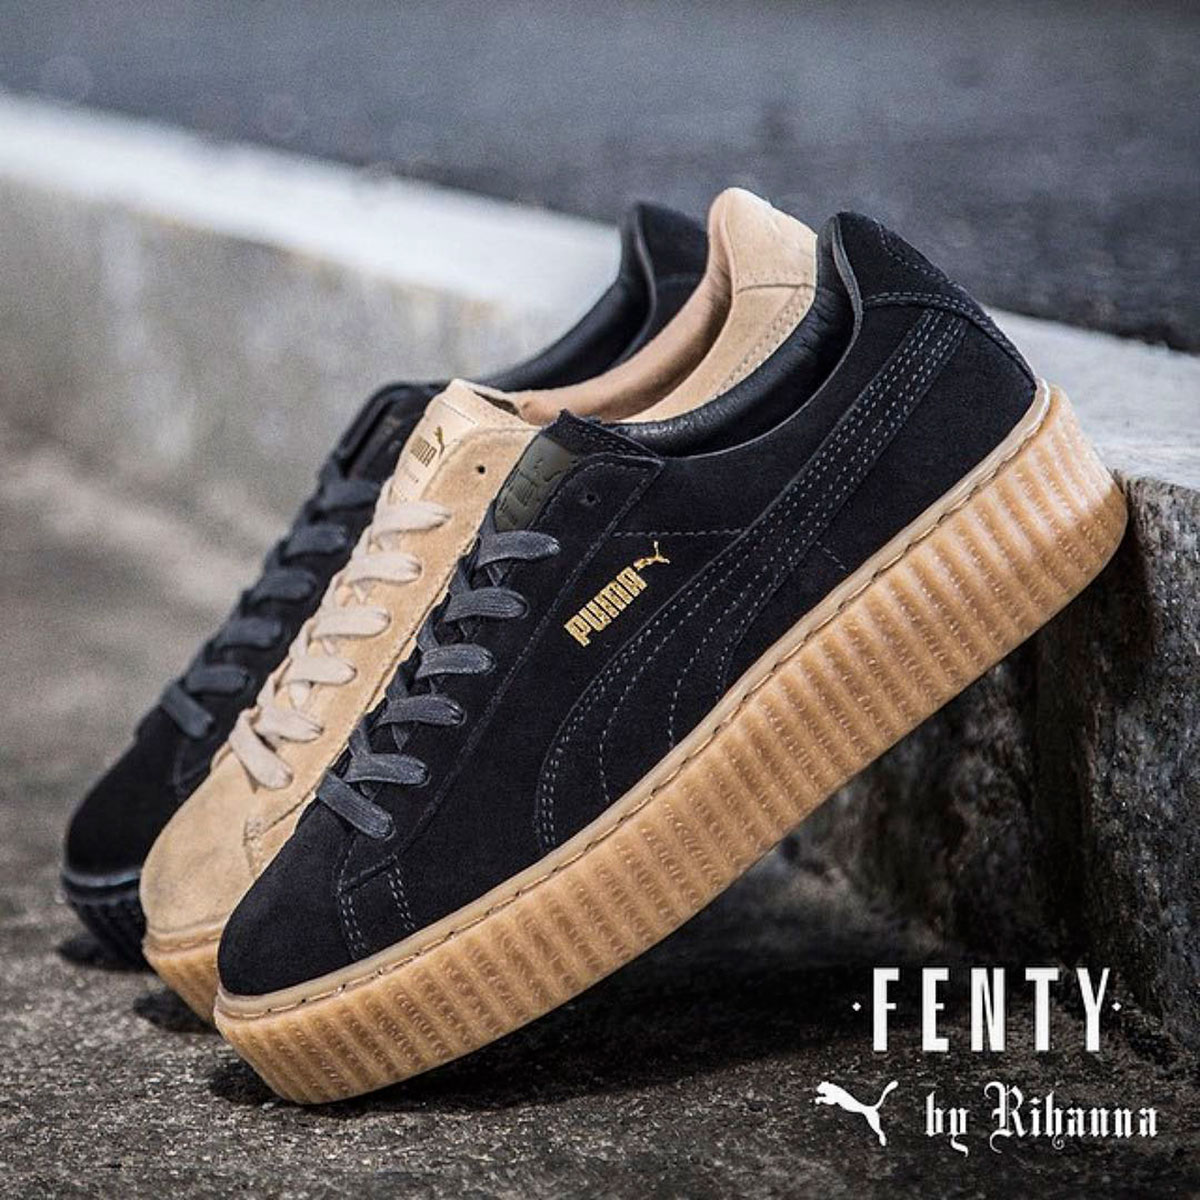 rihanna fenty puma creepers sold out online YARD Be